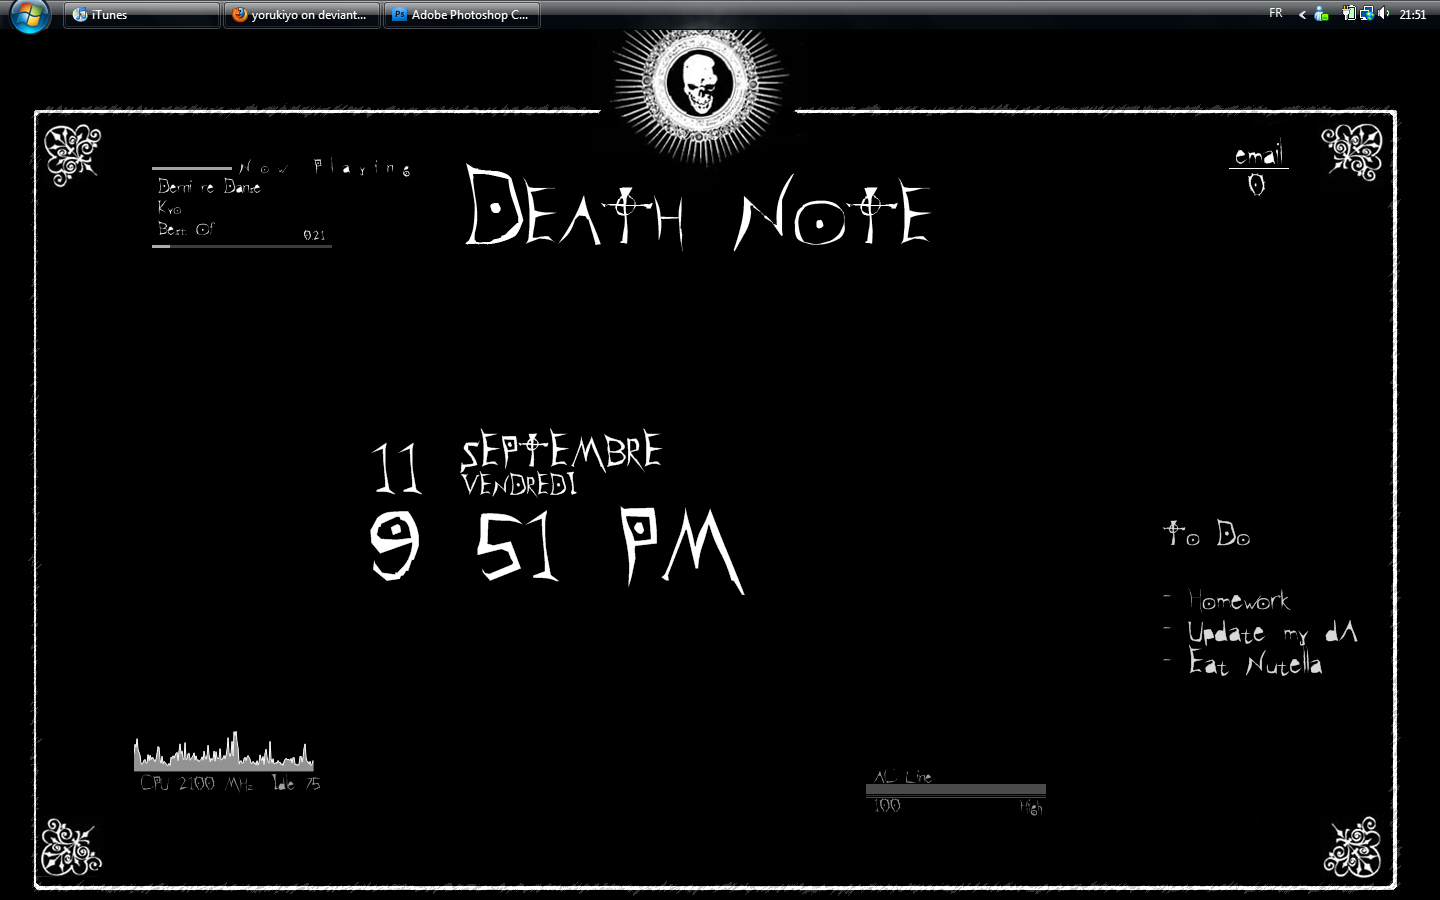 Death Note style